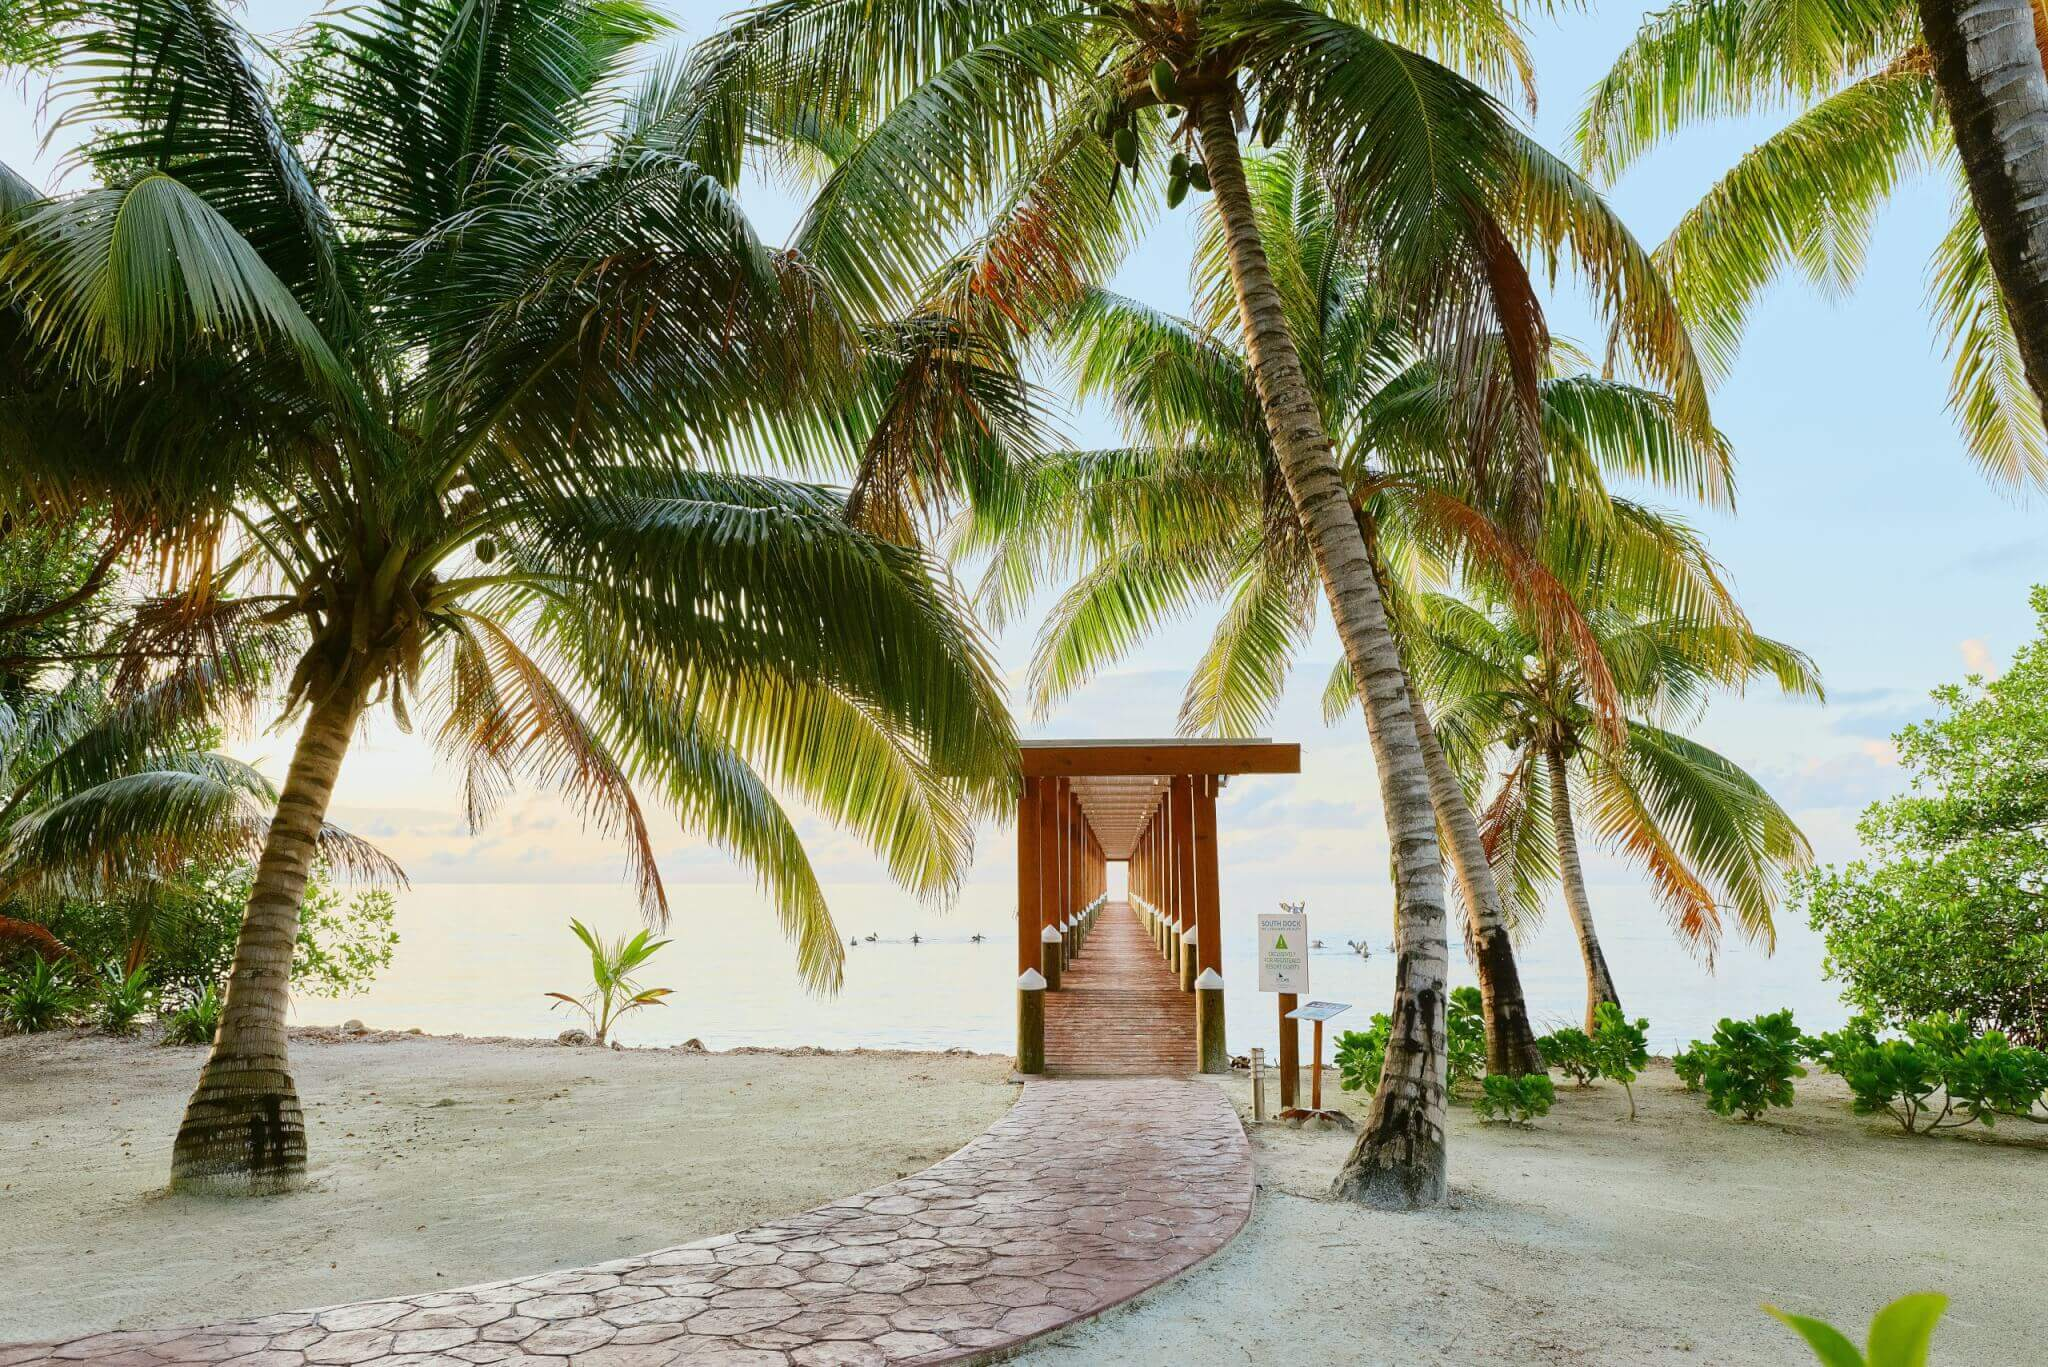 Unplug and Reconnect in Sunny Belize